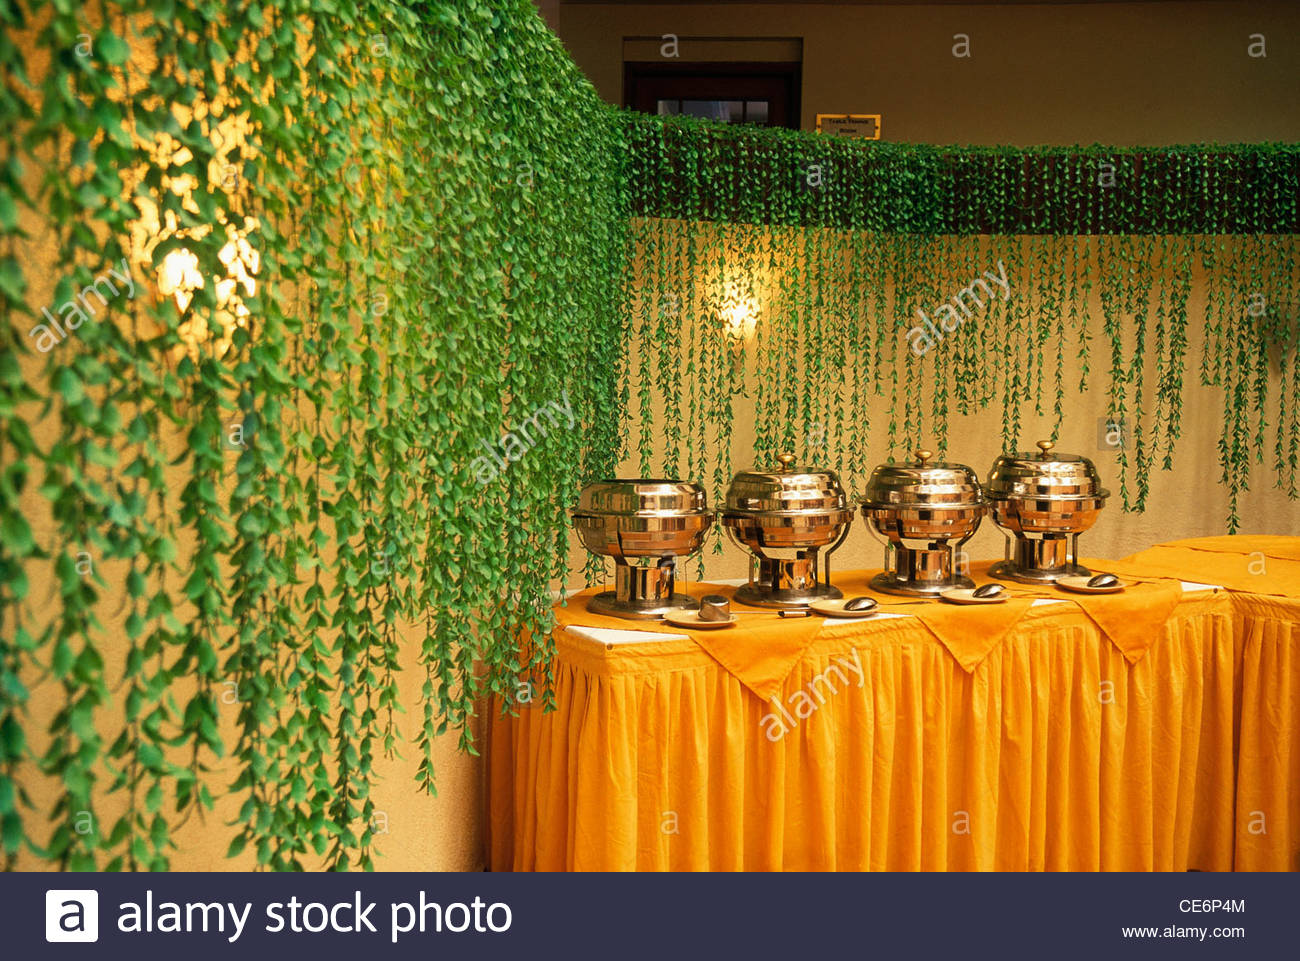 Buffet table with copper pots at wedding reception india stock photo buffet table with copper pots at wedding reception india junglespirit Gallery